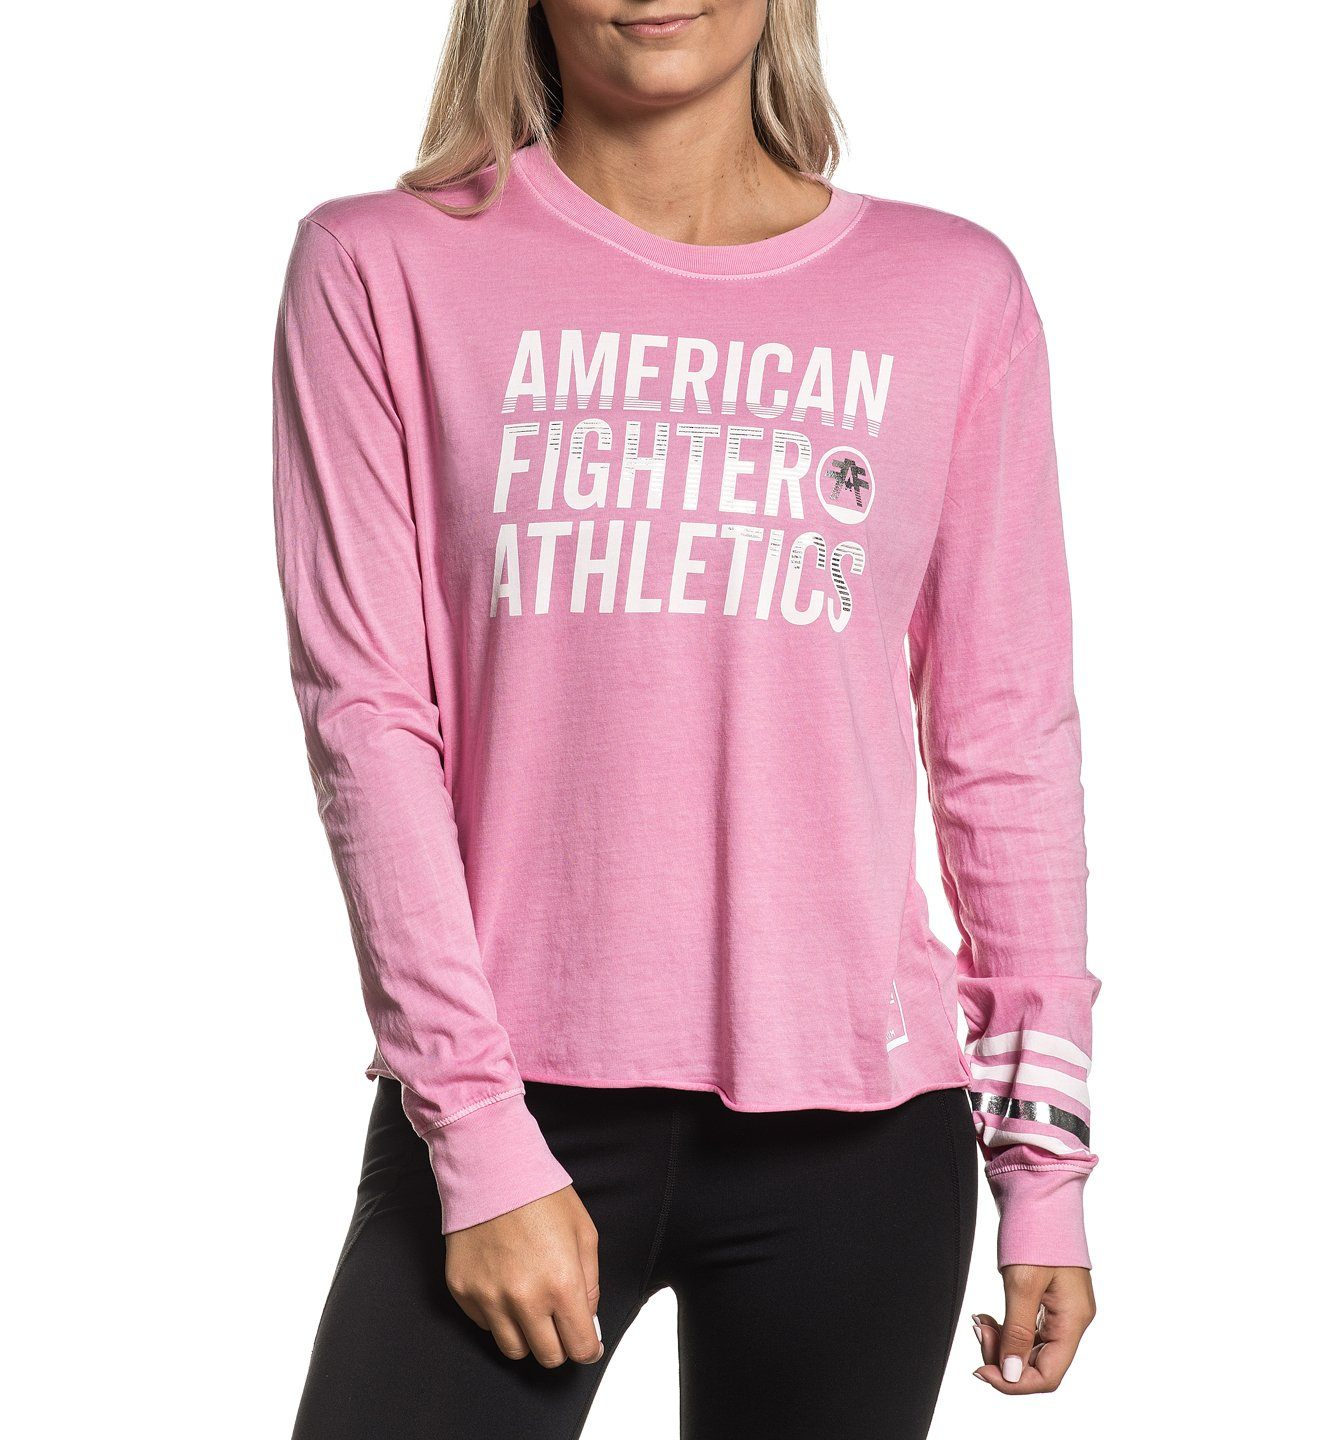 Finlandia - Womens Long Sleeve Tees - American Fighter